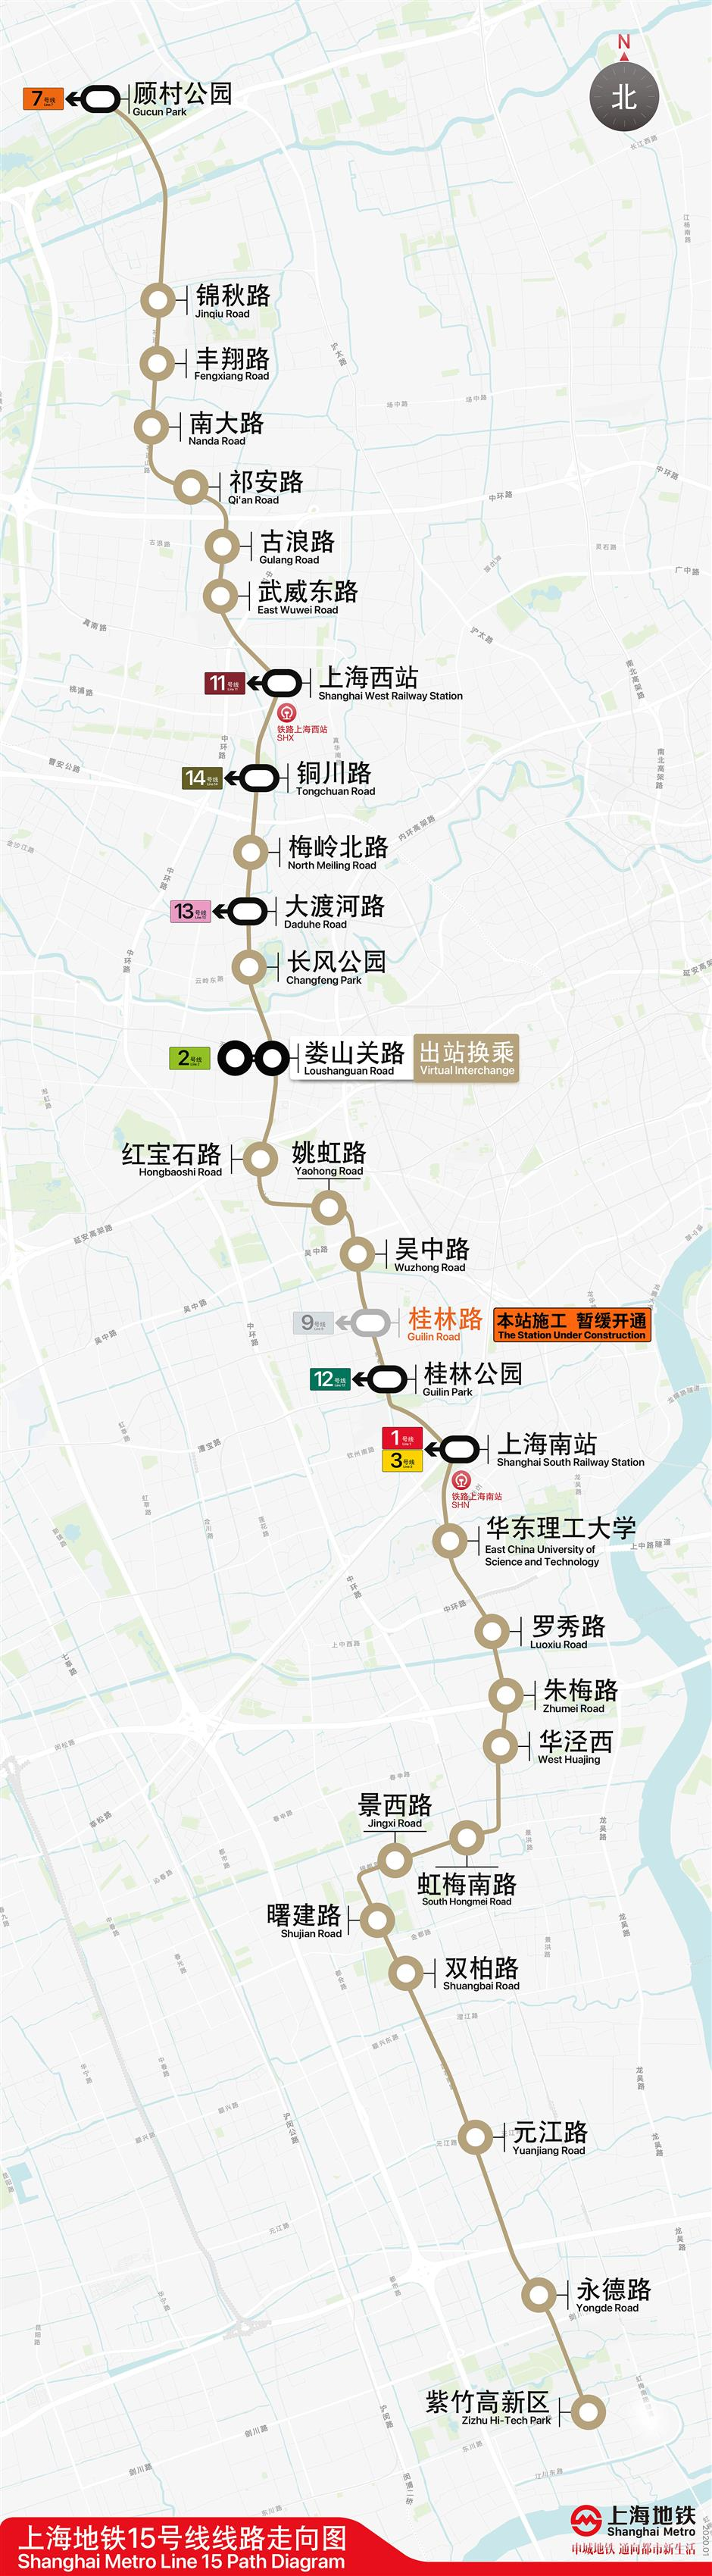 New Metro Line 15 hits the tracks this weekend